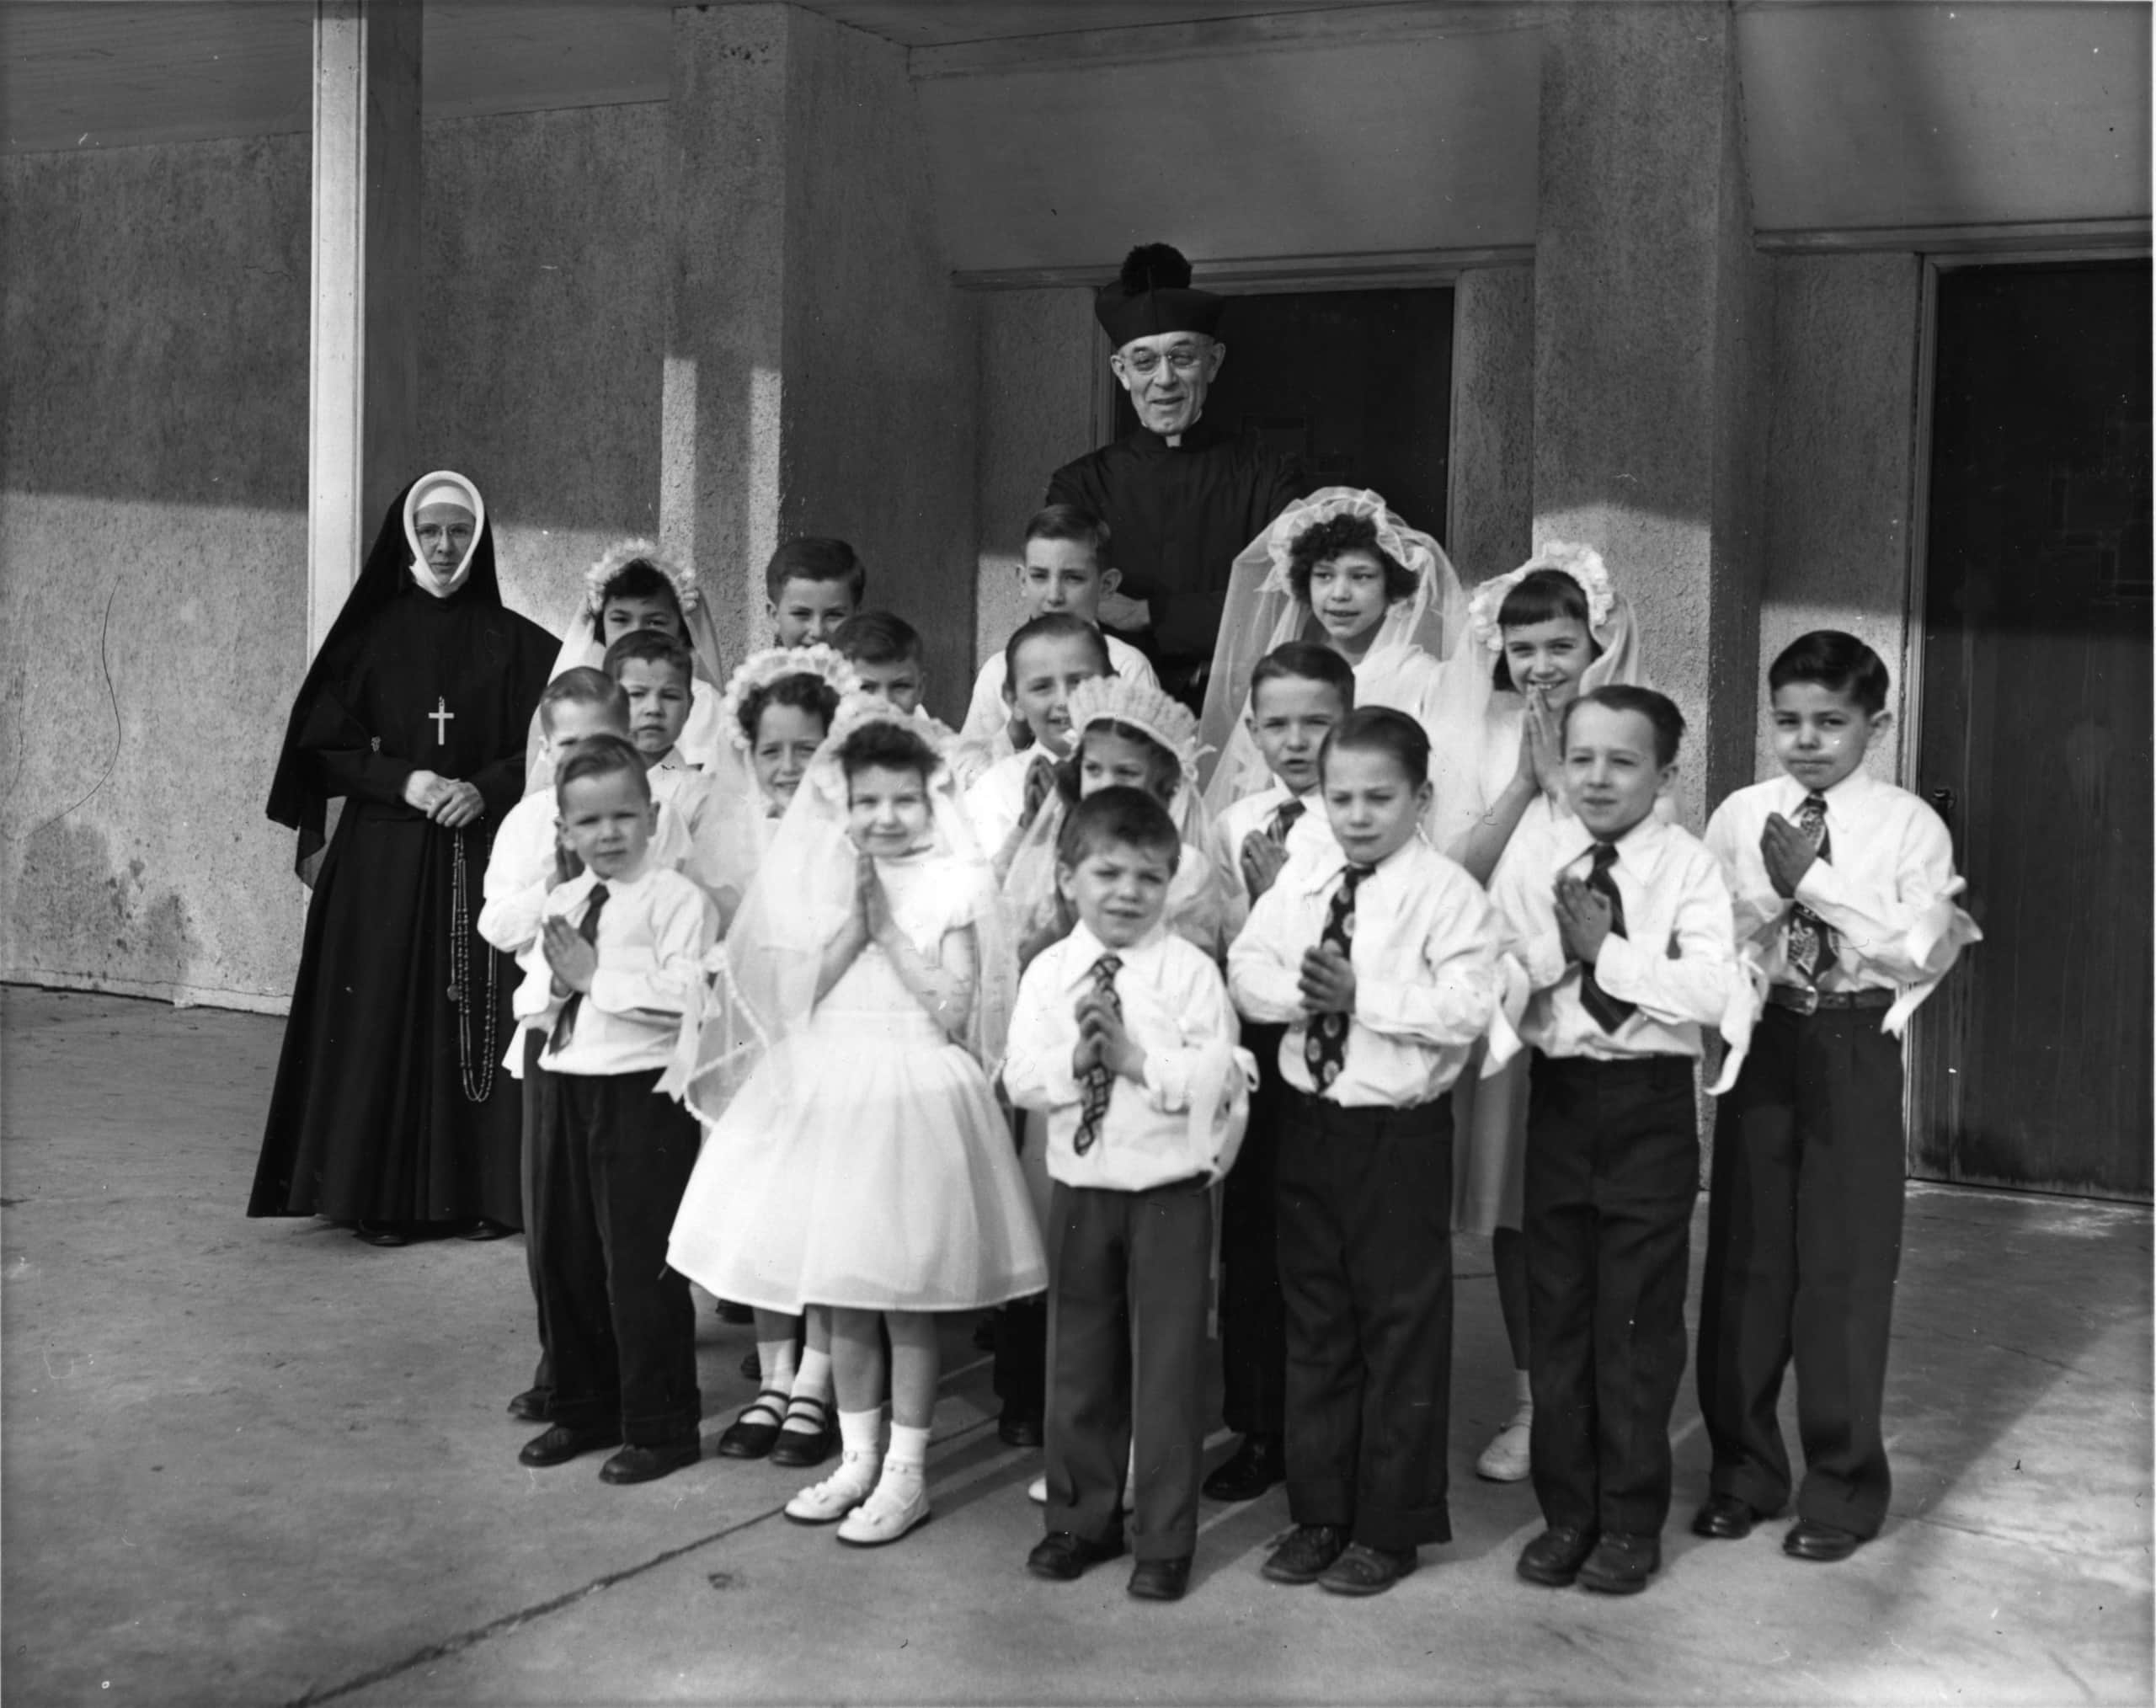 STC asks that residential school be acknowledged